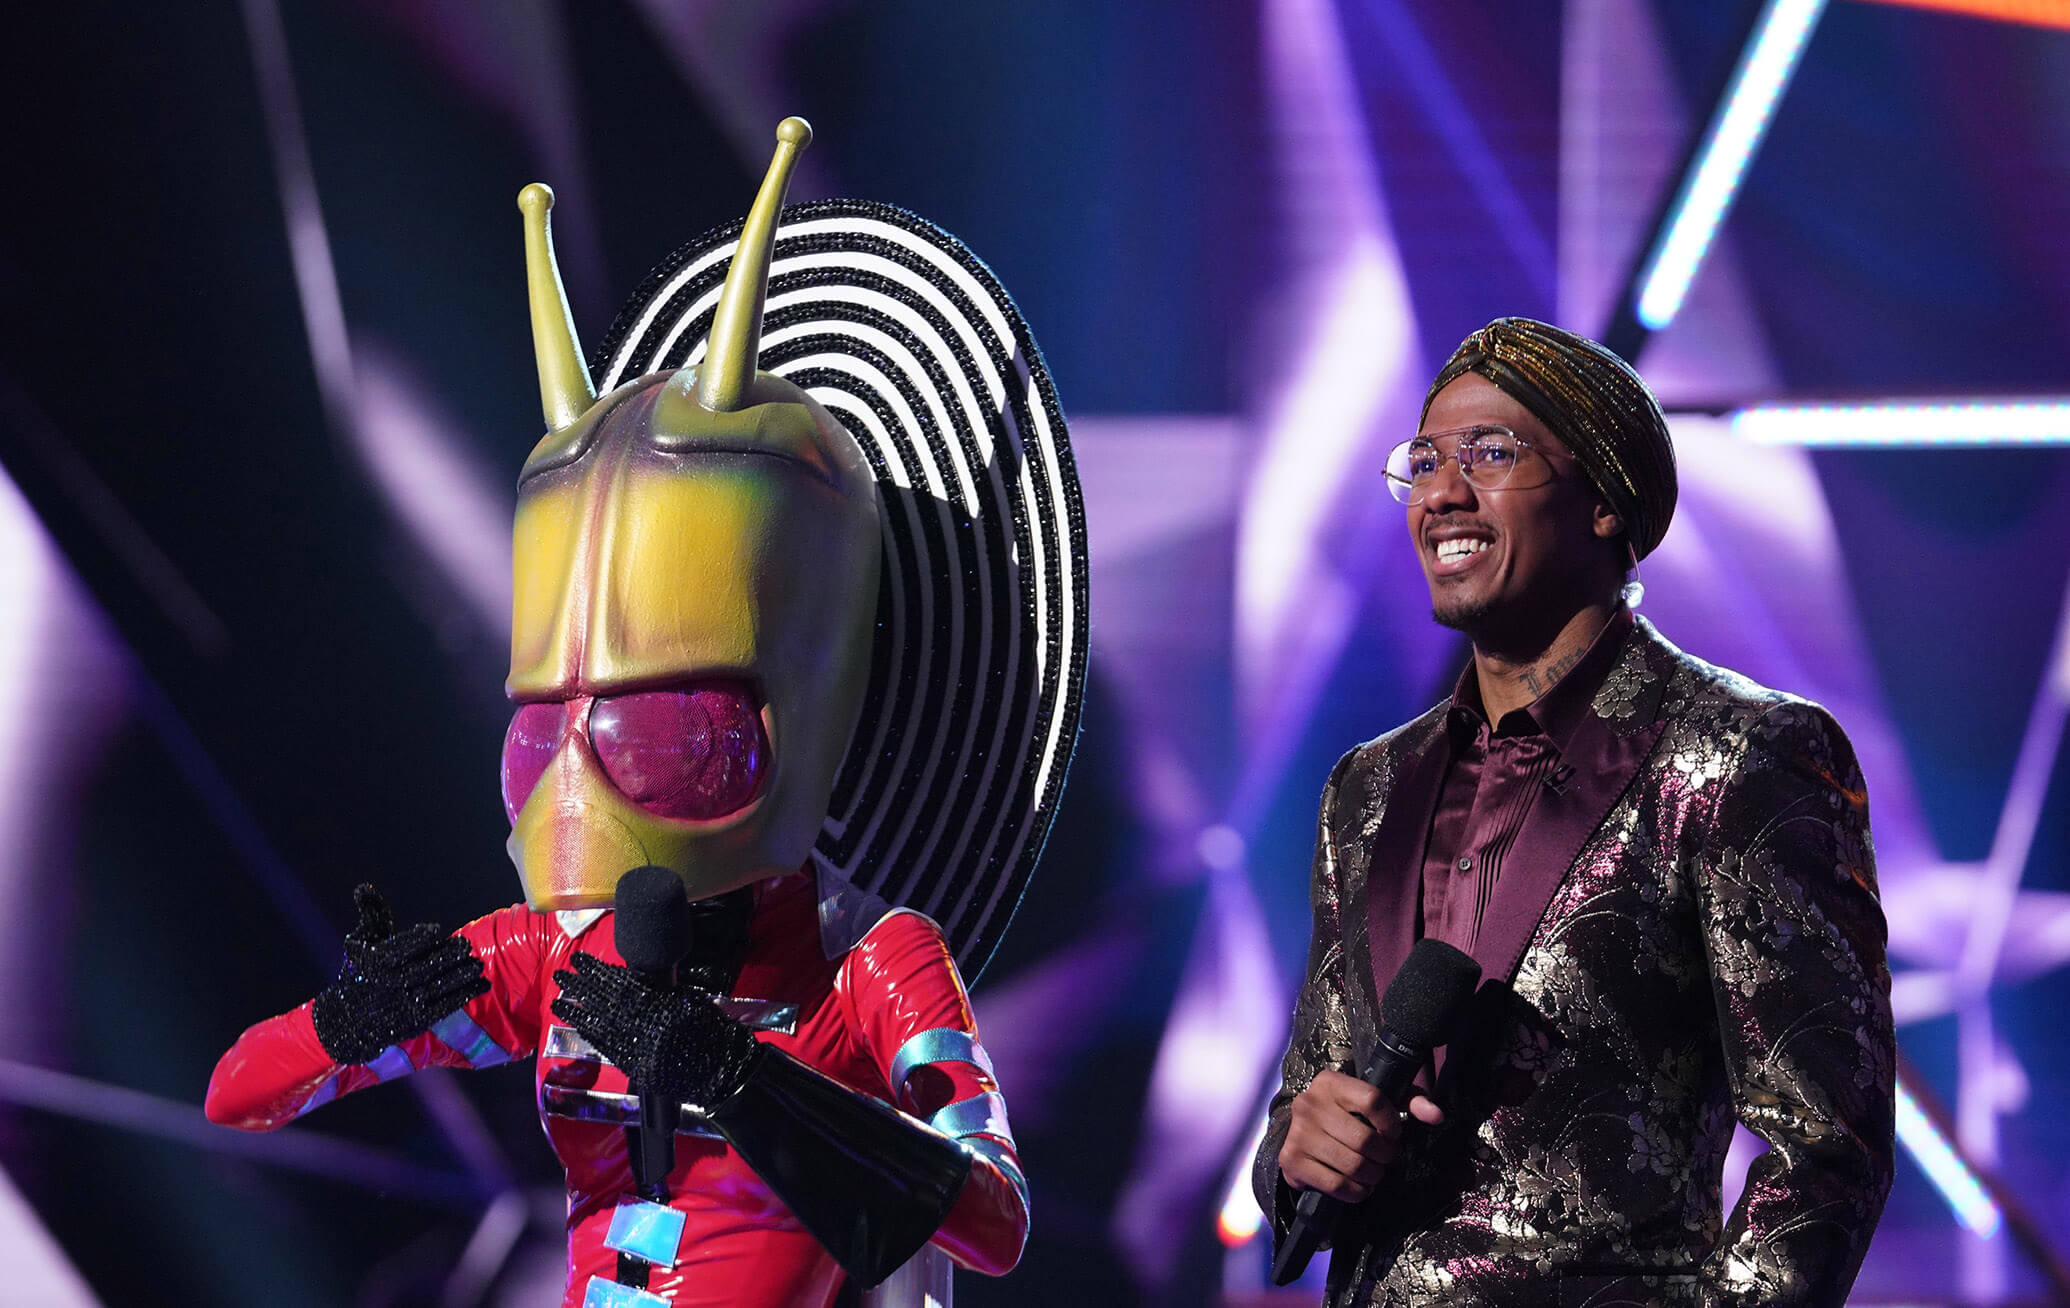 The Masked Singer Host Is Nick Cannon Returning To The Fox Show